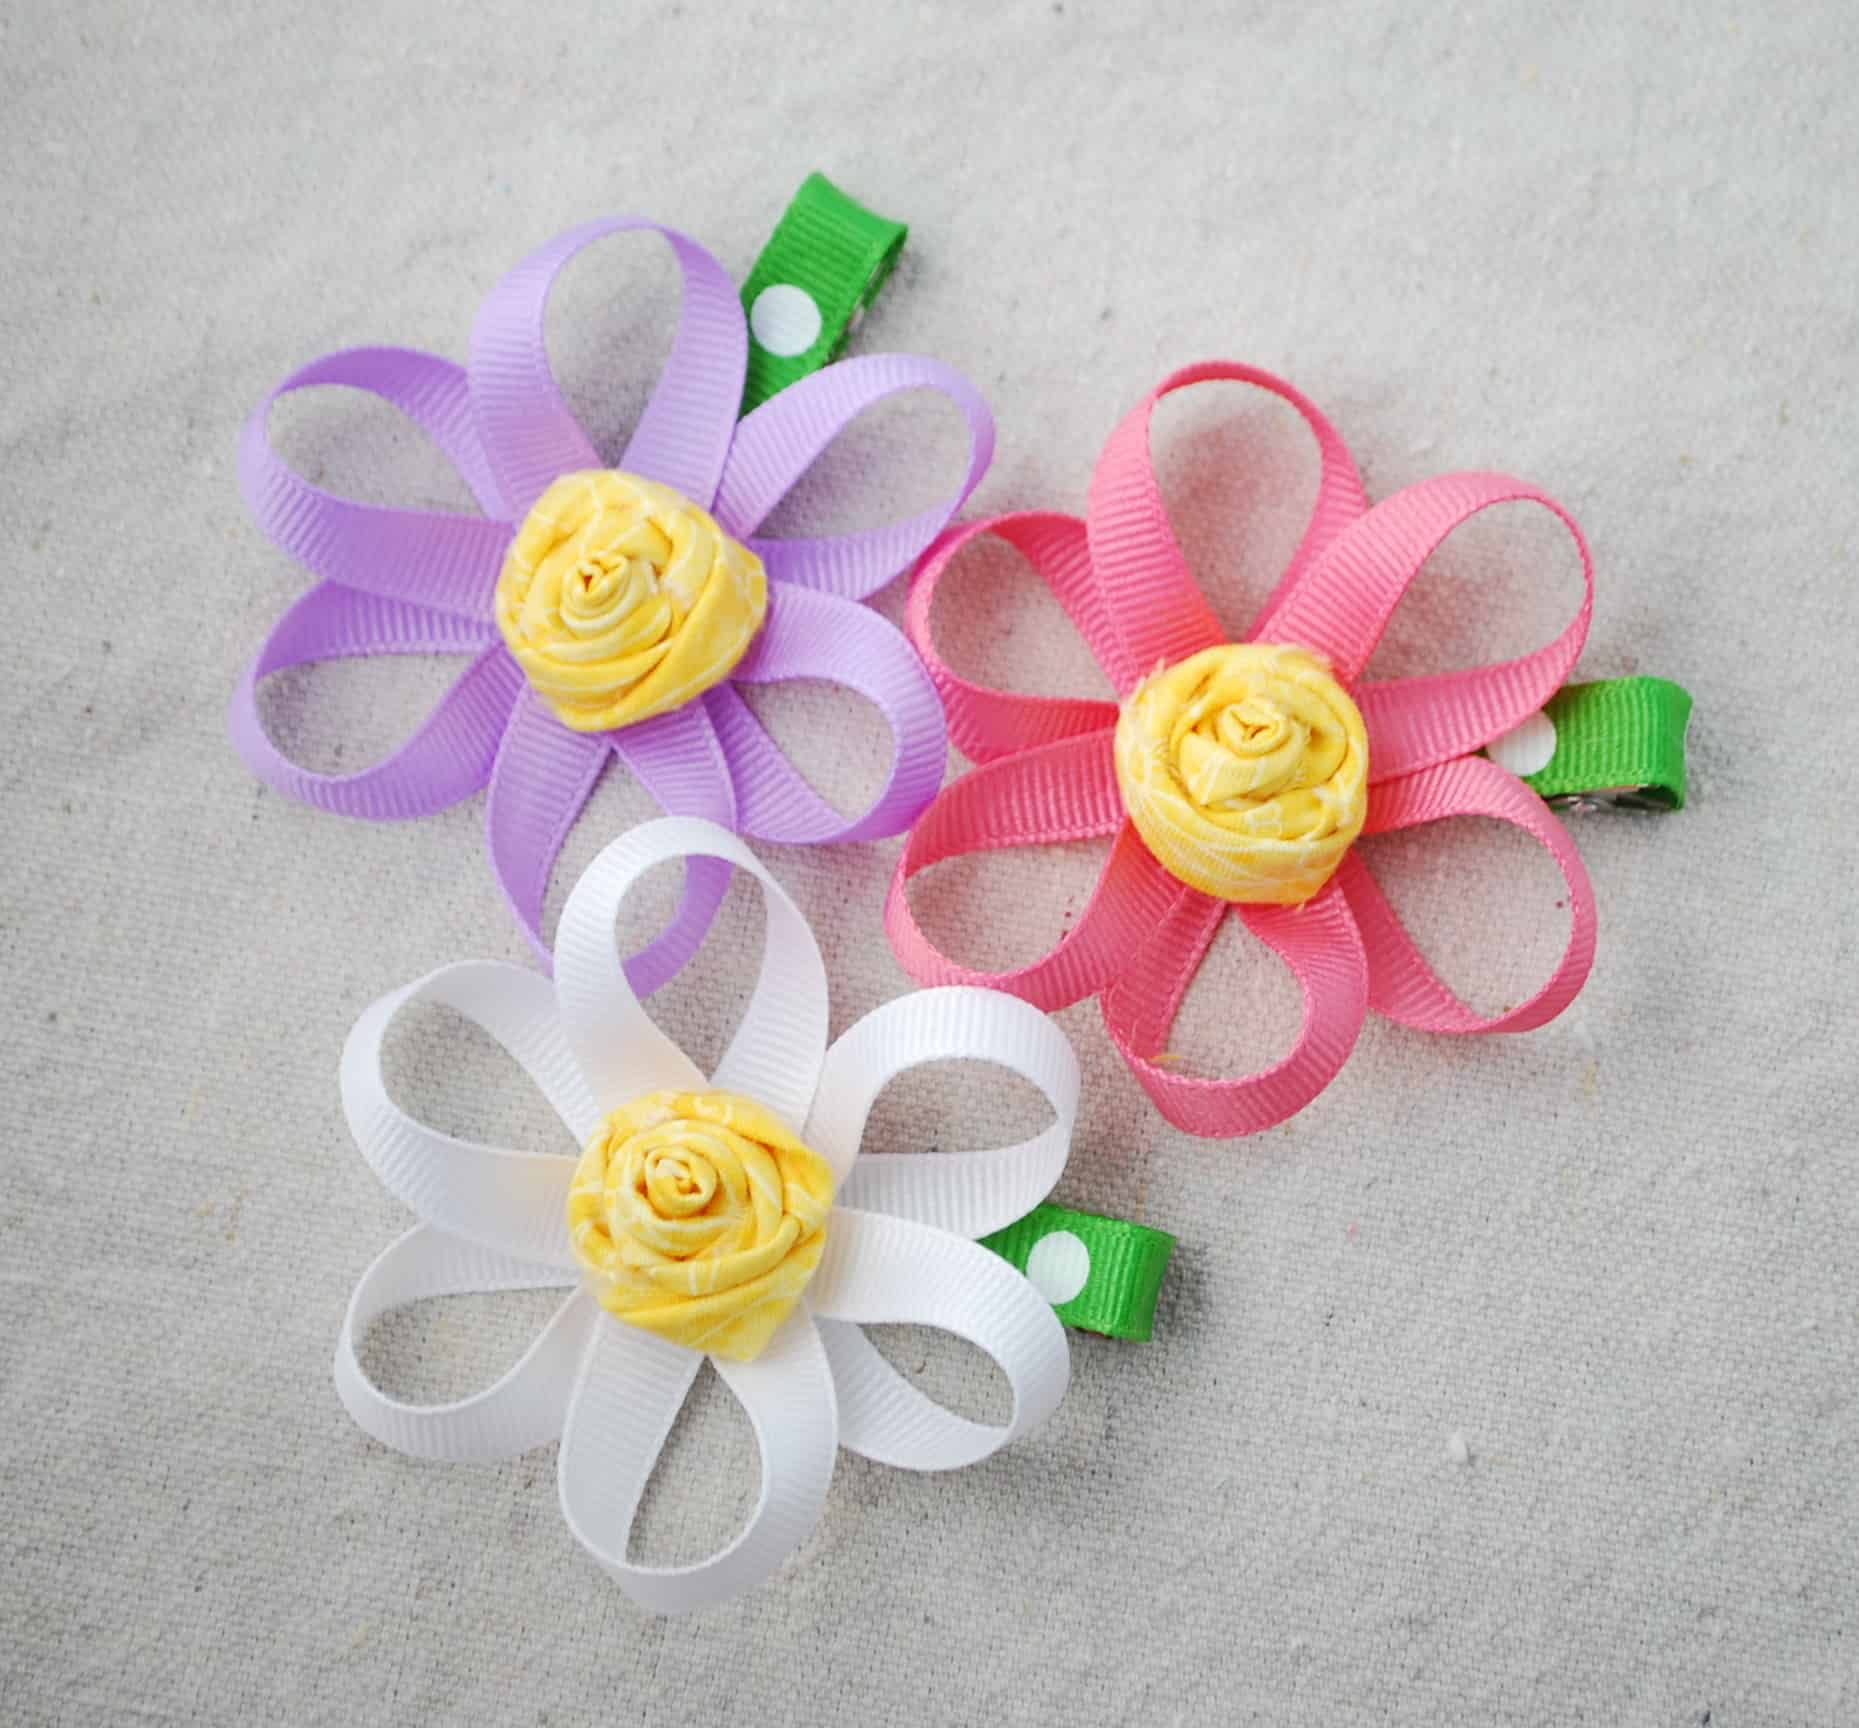 20Pcs Hair Barrettes, Coxeer Non-slip Multicolor Assembling Hair Clips Hair Bows Hair Pins Hair Accessories for Baby Girls Kids Teens Toddlers Children Add To Cart There is a problem adding to cart.